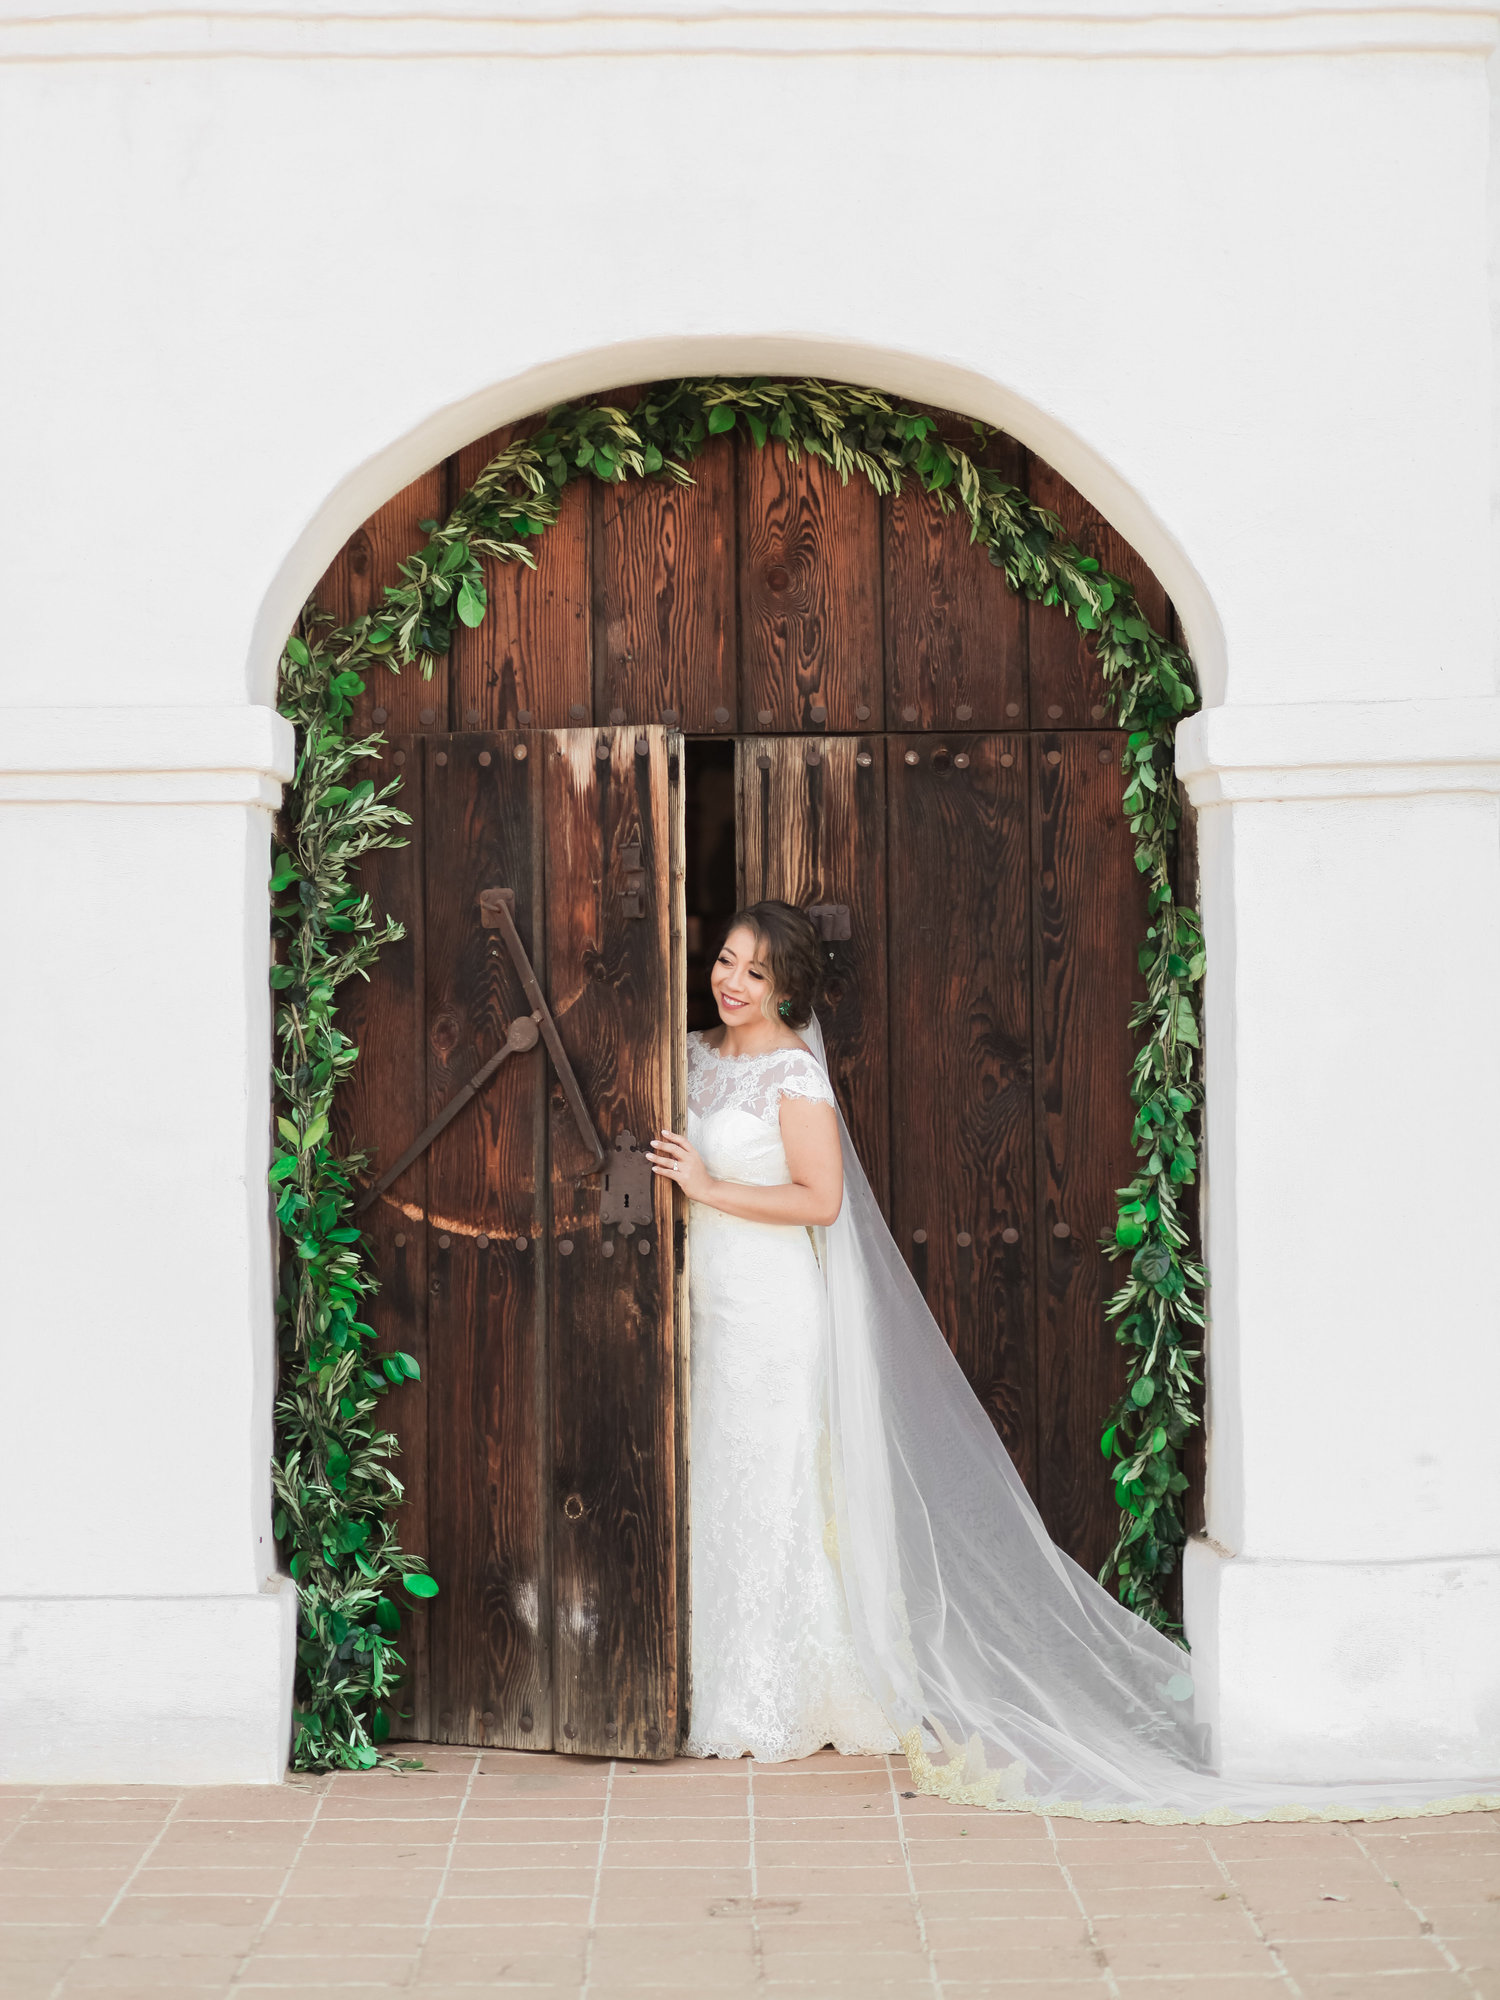 Presidio Chapel Wedding in Santa Barbara now on Cottage Hill